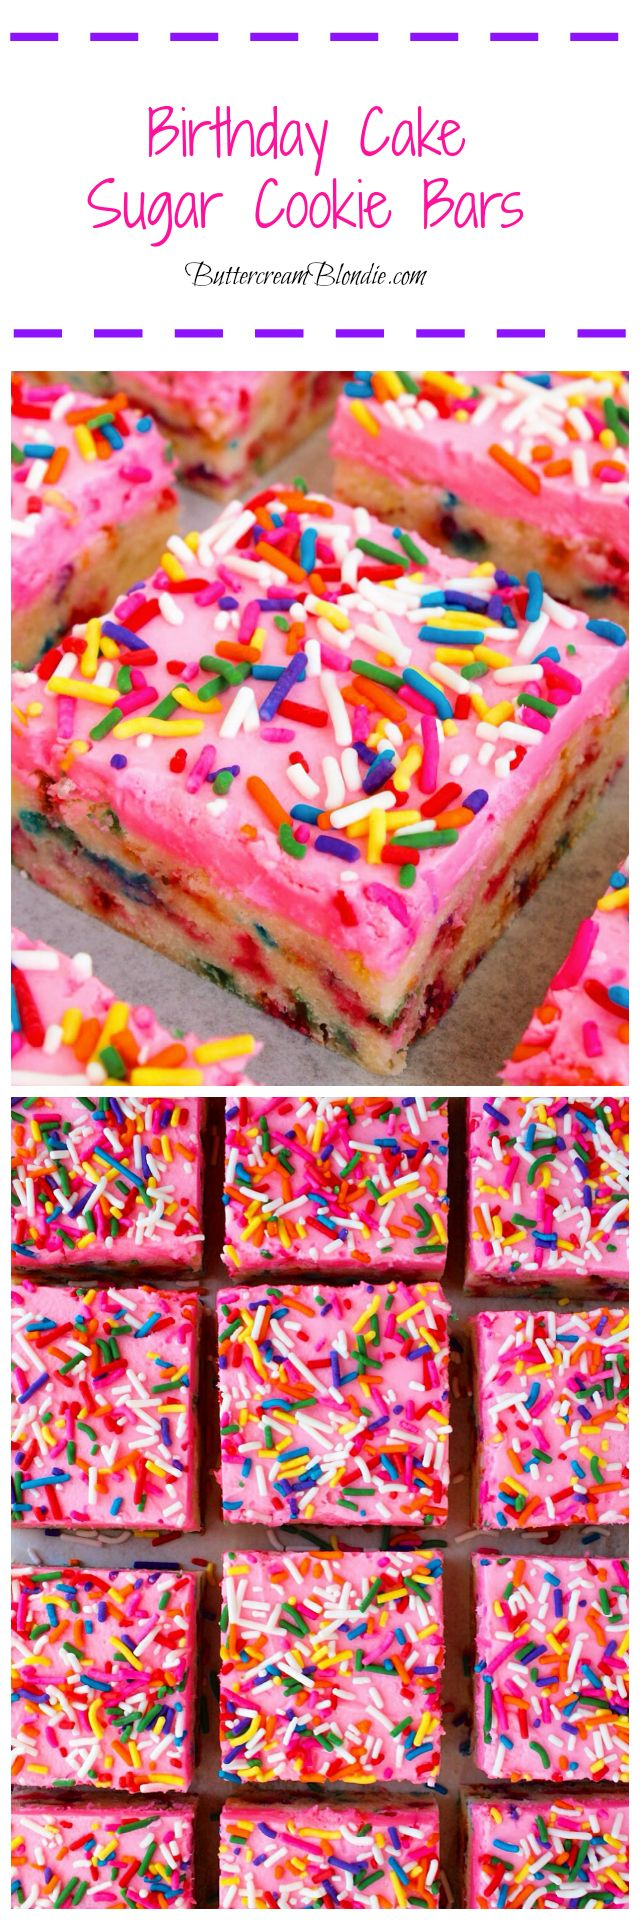 Birthday Cake Sugar Cookie Bars - Super easy sugar cookie bars are loaded with rainbow sprinkles and topped with vanilla buttercream! | ButtercreamBlondie.com